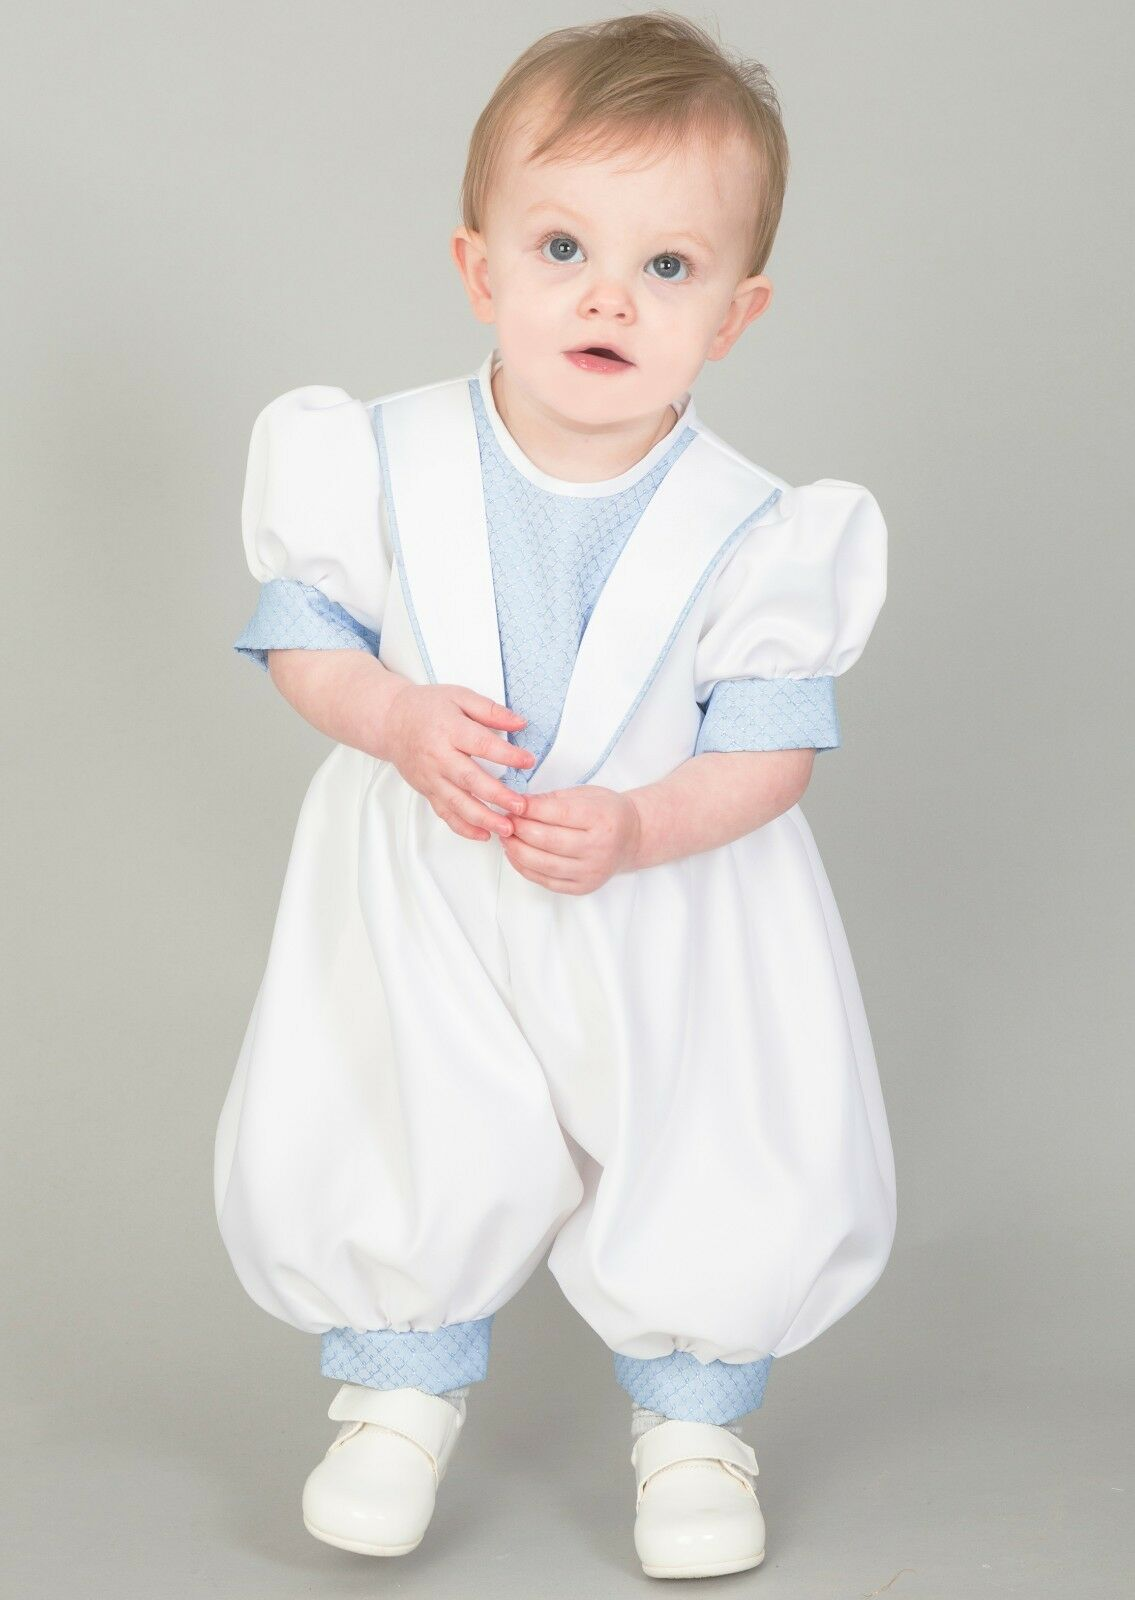 3700091fb Baby Boys Christening Outfit / Christening Suit Romper White Blue ...